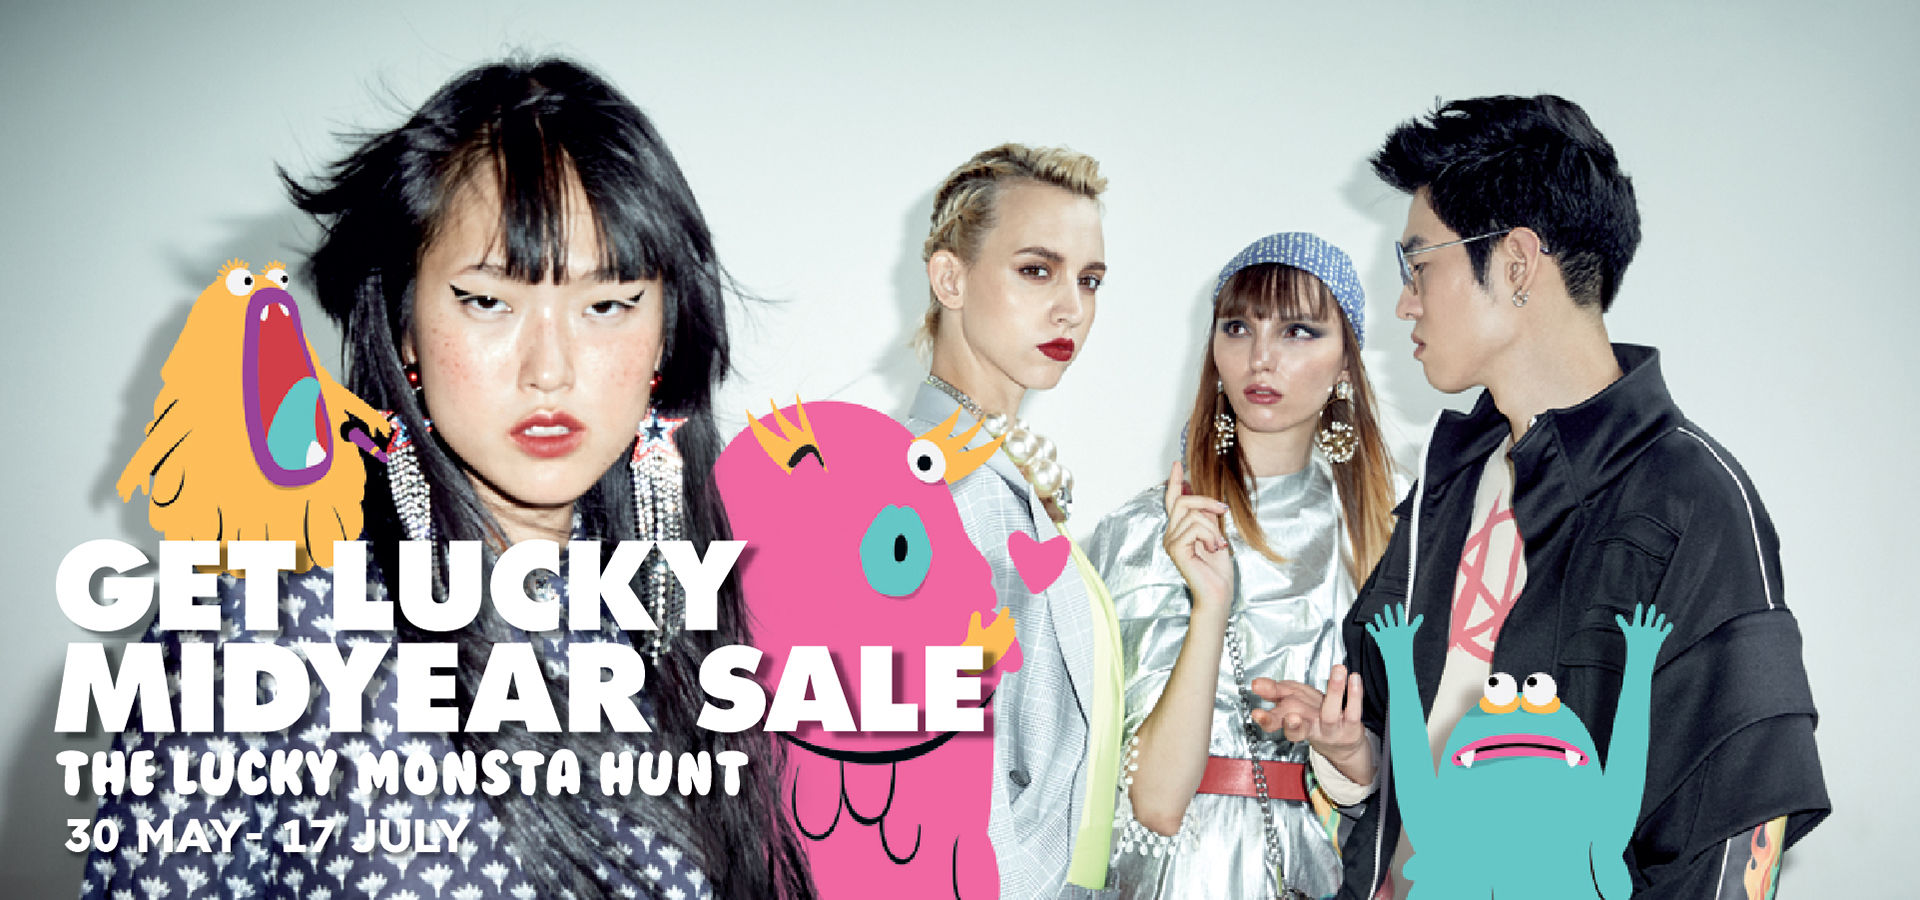 get lucky midyear sale the lucky monsta hunt